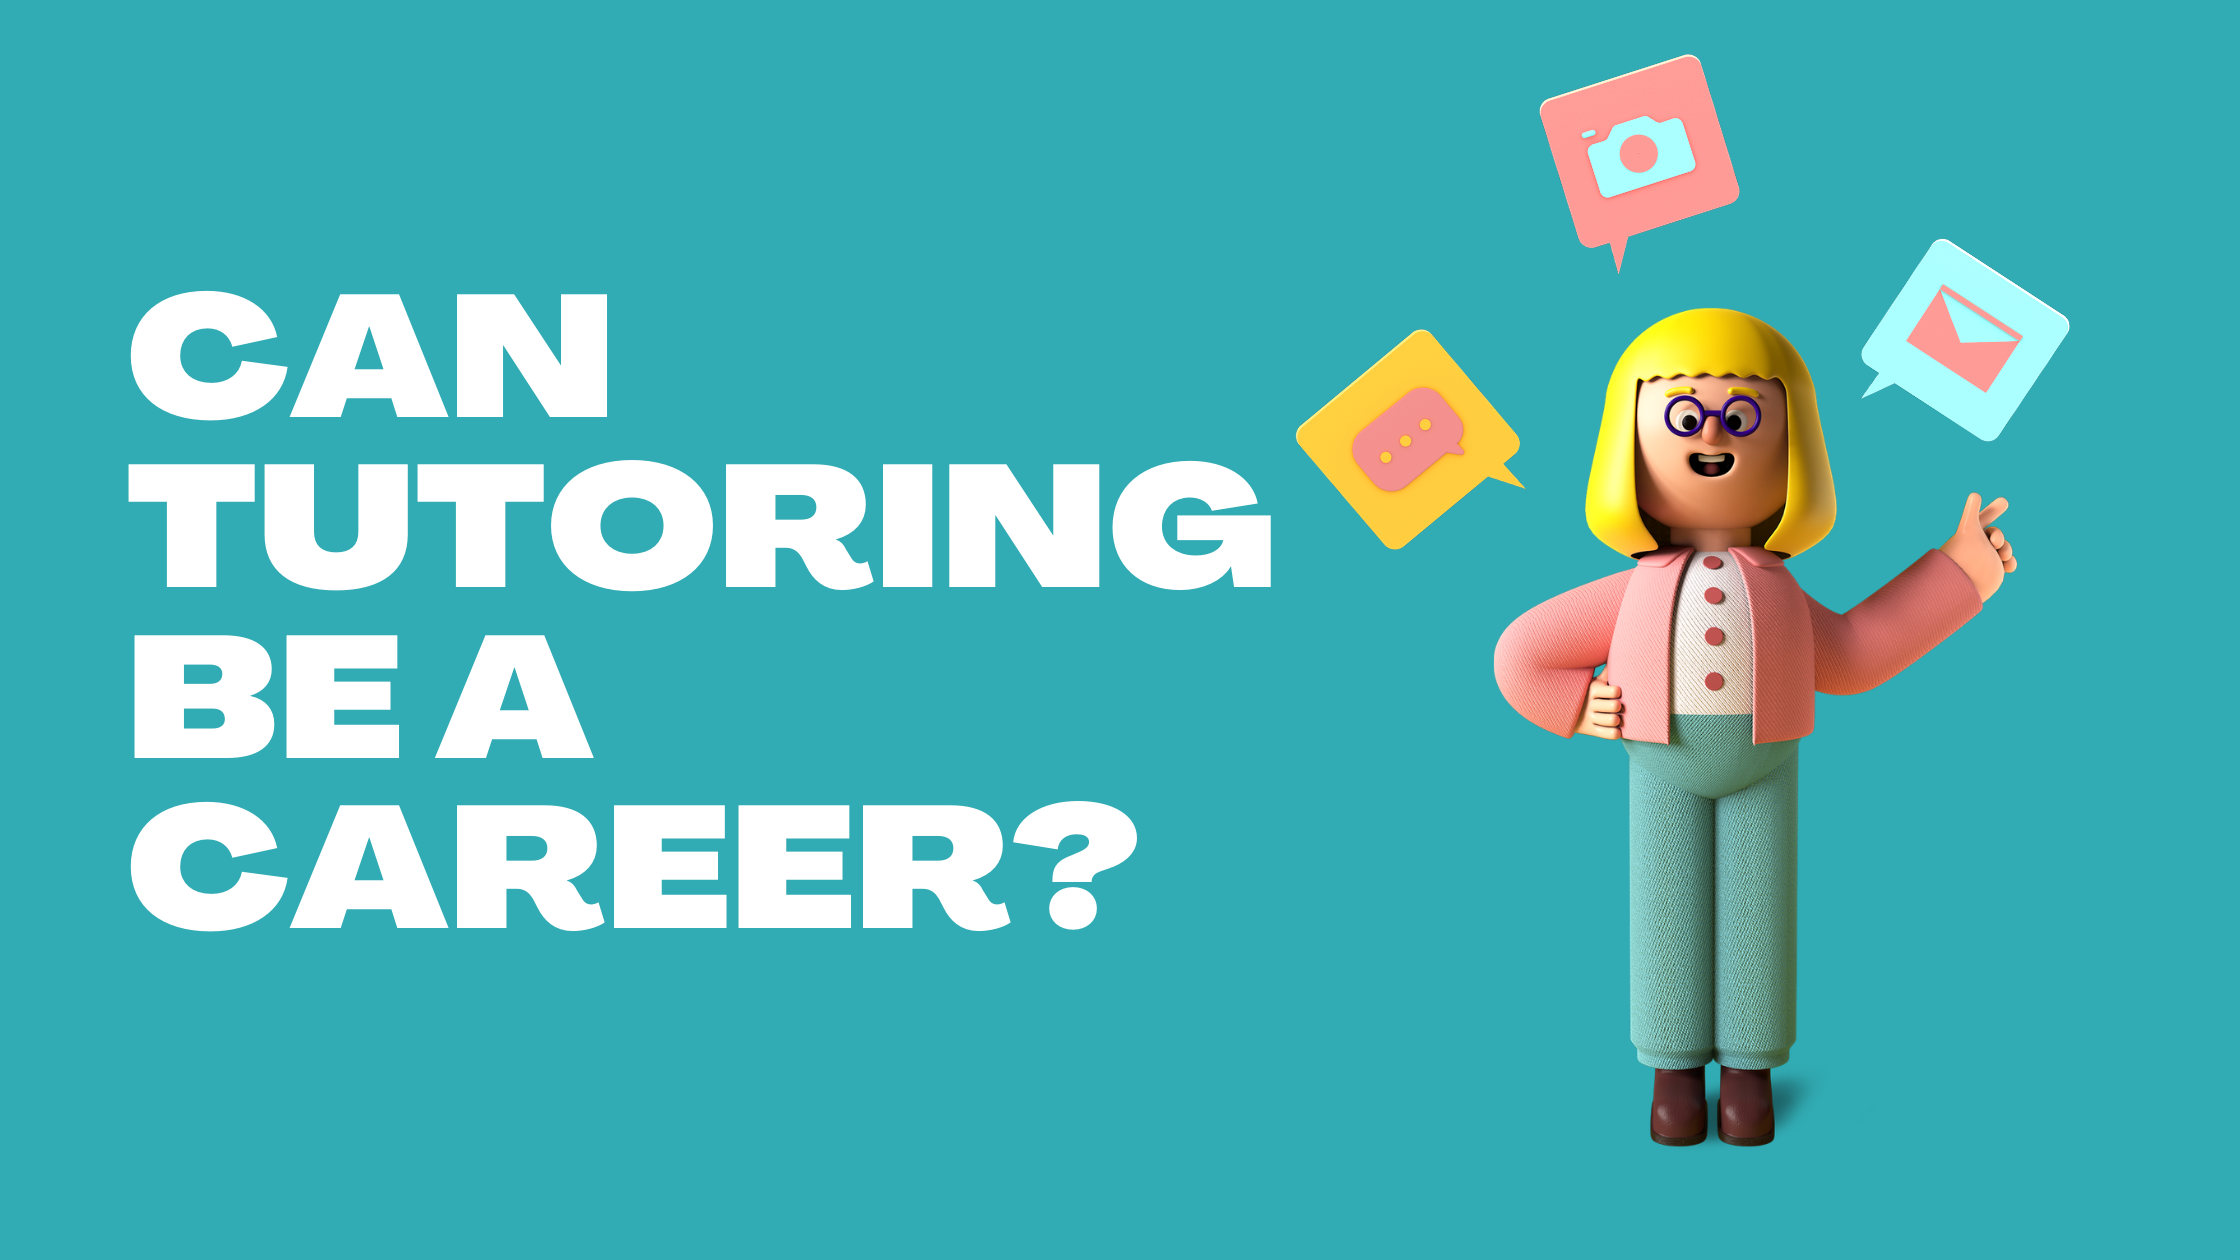 Can tutoring be a career?